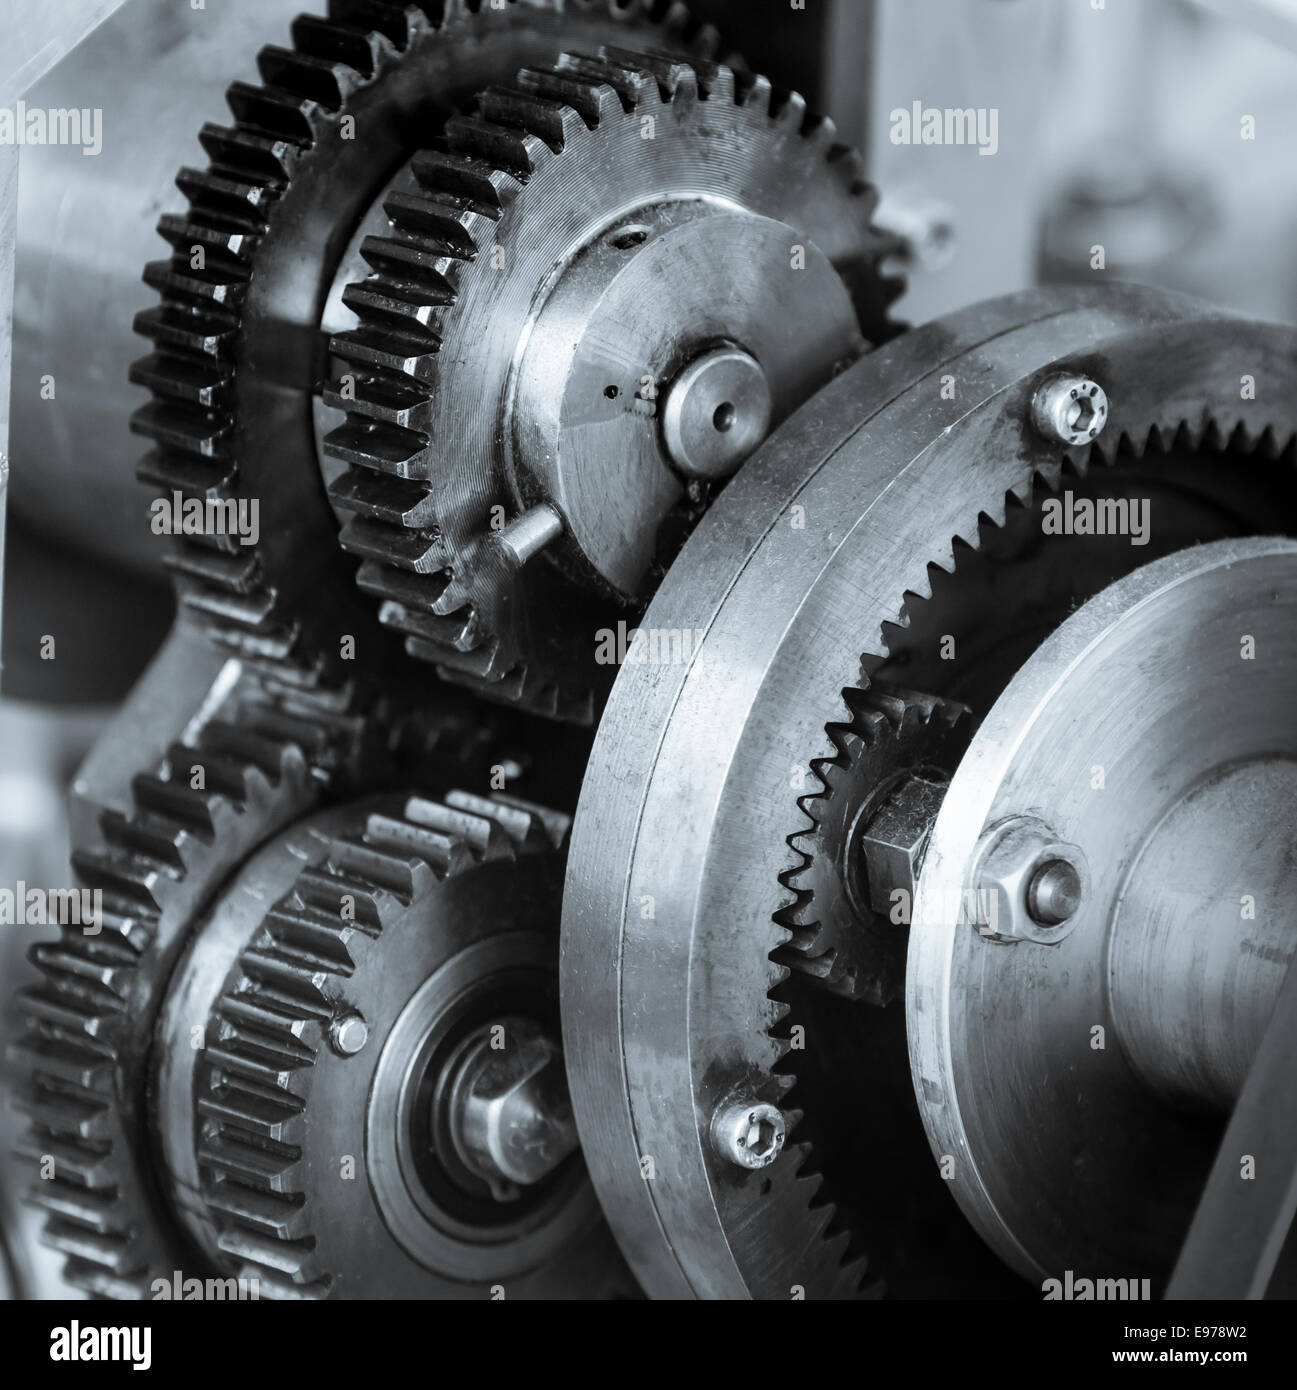 Gears and cogs of old machine - Stock Image